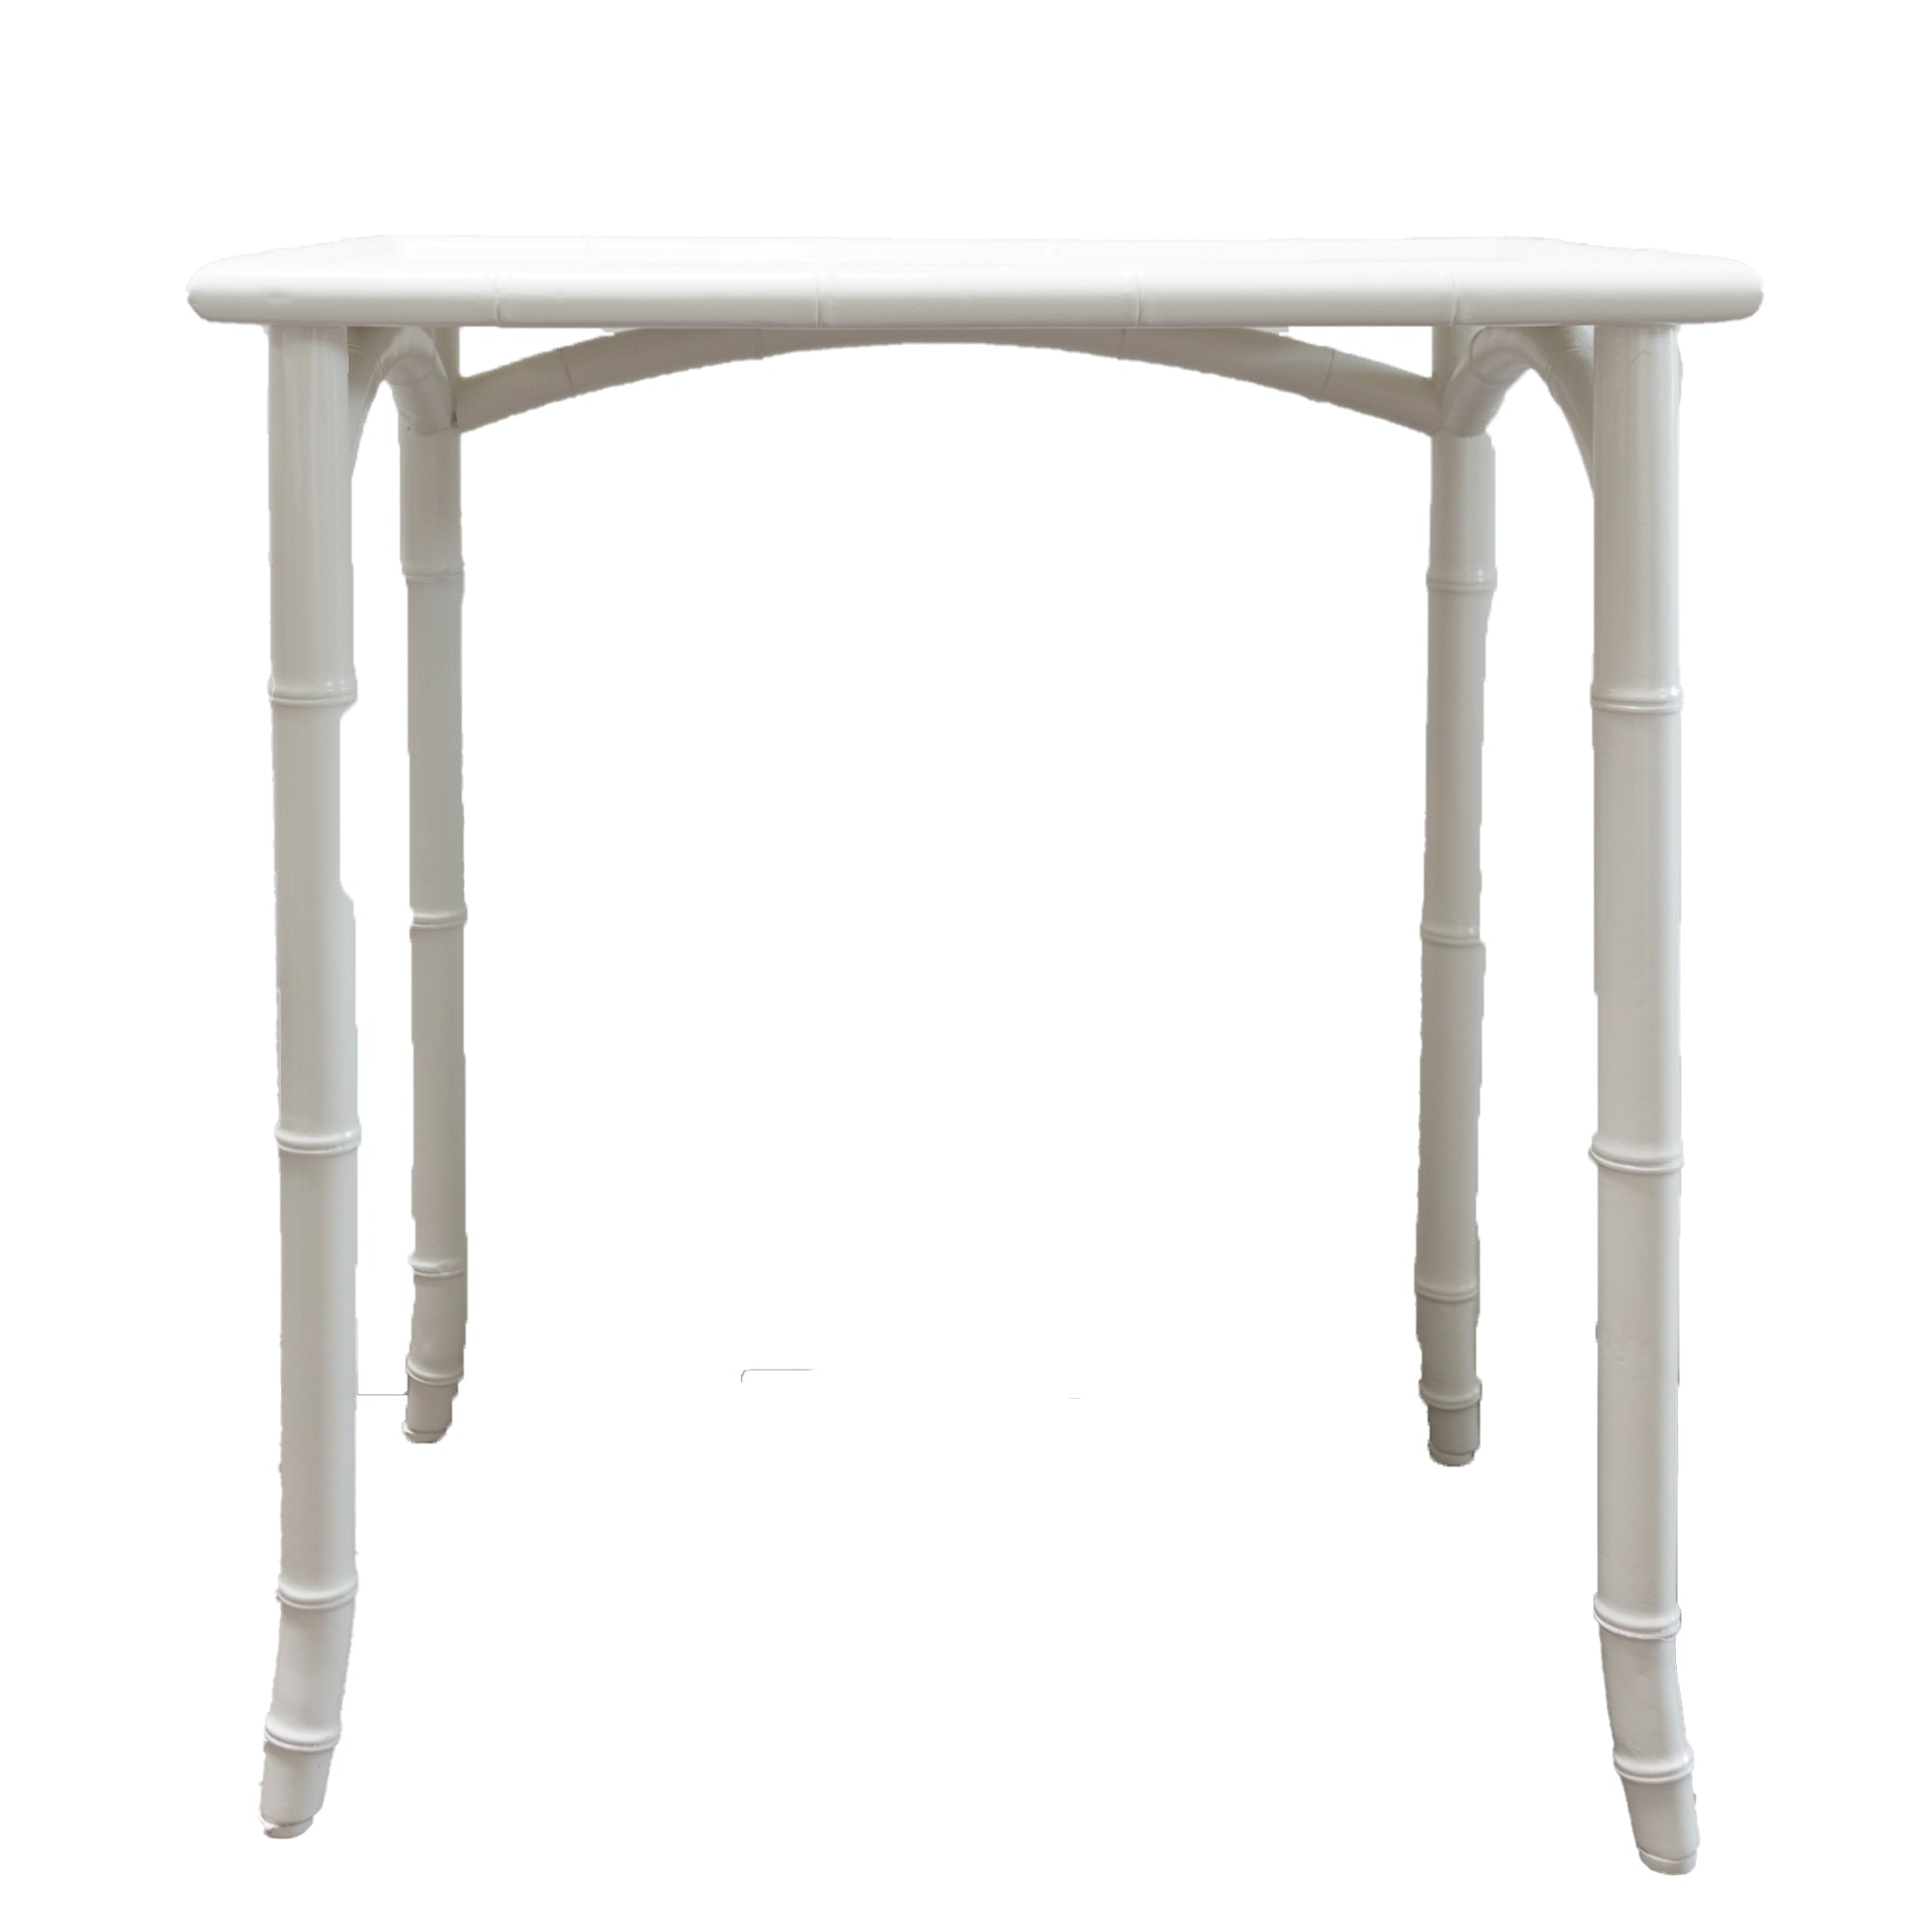 White Bamboo Nesting Tables - Amy Berry Home